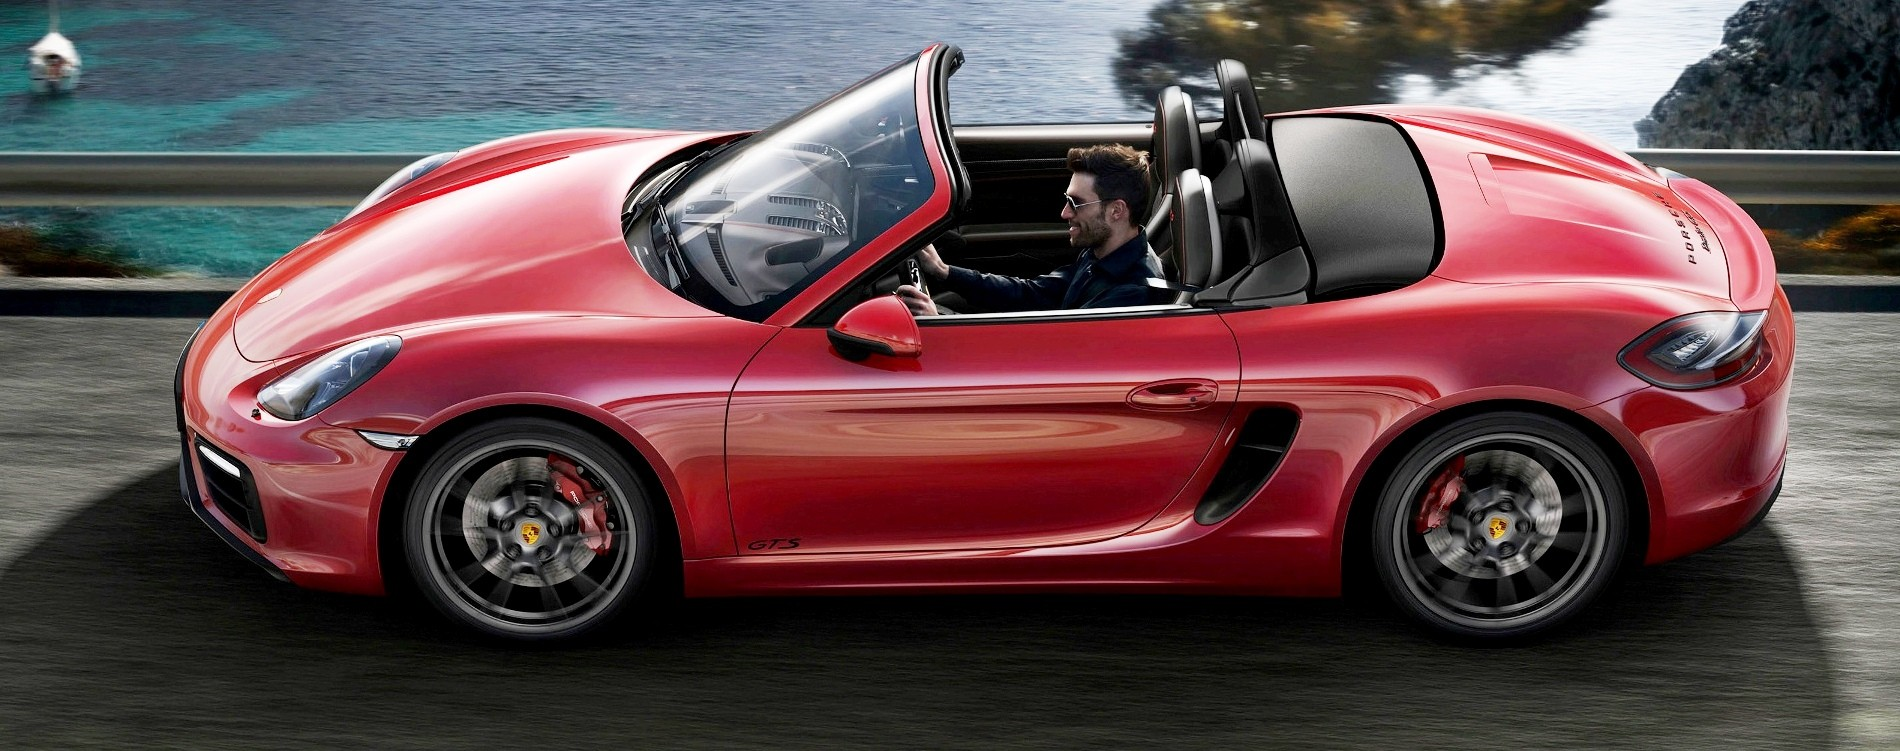 Porsche Boxster and Cayman GTS Range-Toppers Confirmed with 340HP and 4